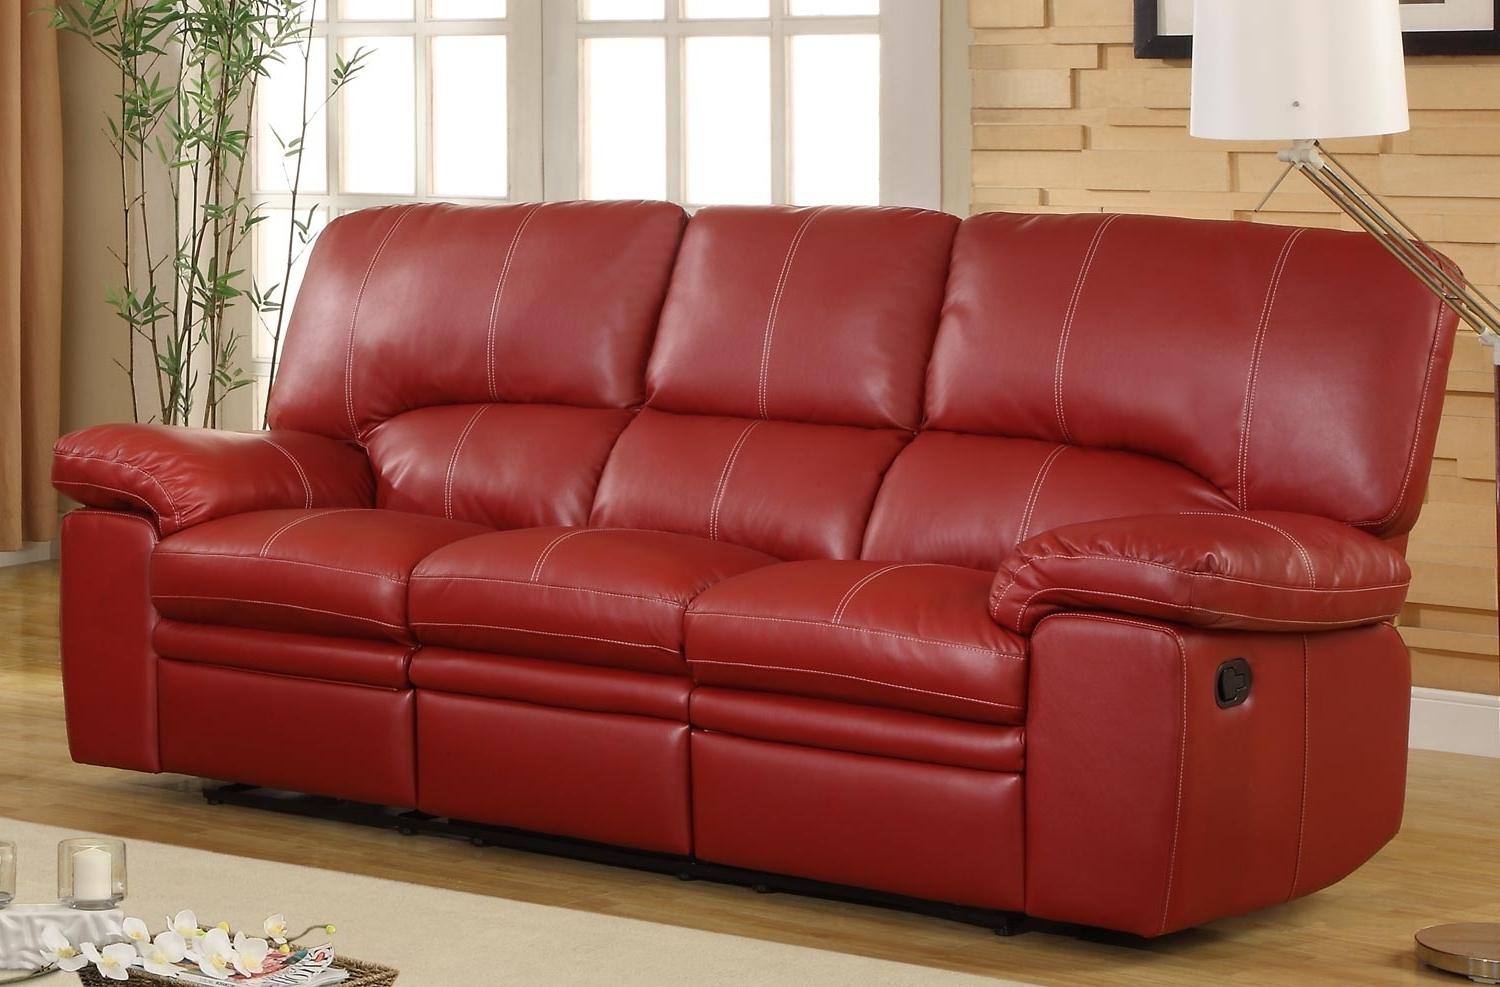 Fashionable Red Leather Reclining Sofas And Loveseats Inside Red Leather Reclining Sofa – Visionexchange (View 9 of 15)